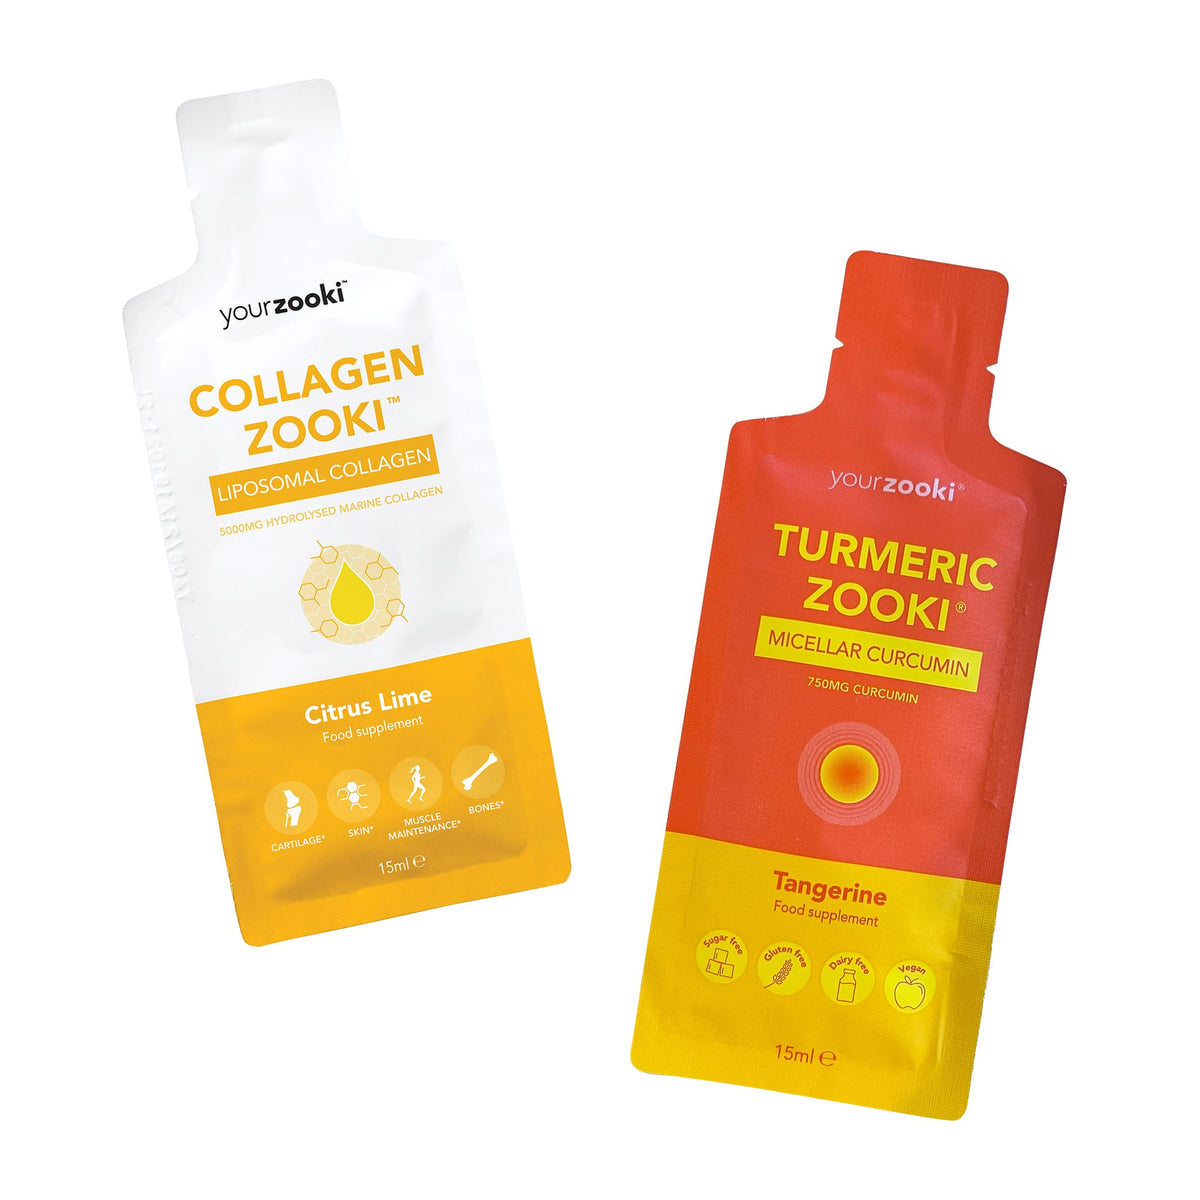 Collagen + Turmeric Zooki Monthly Bundle